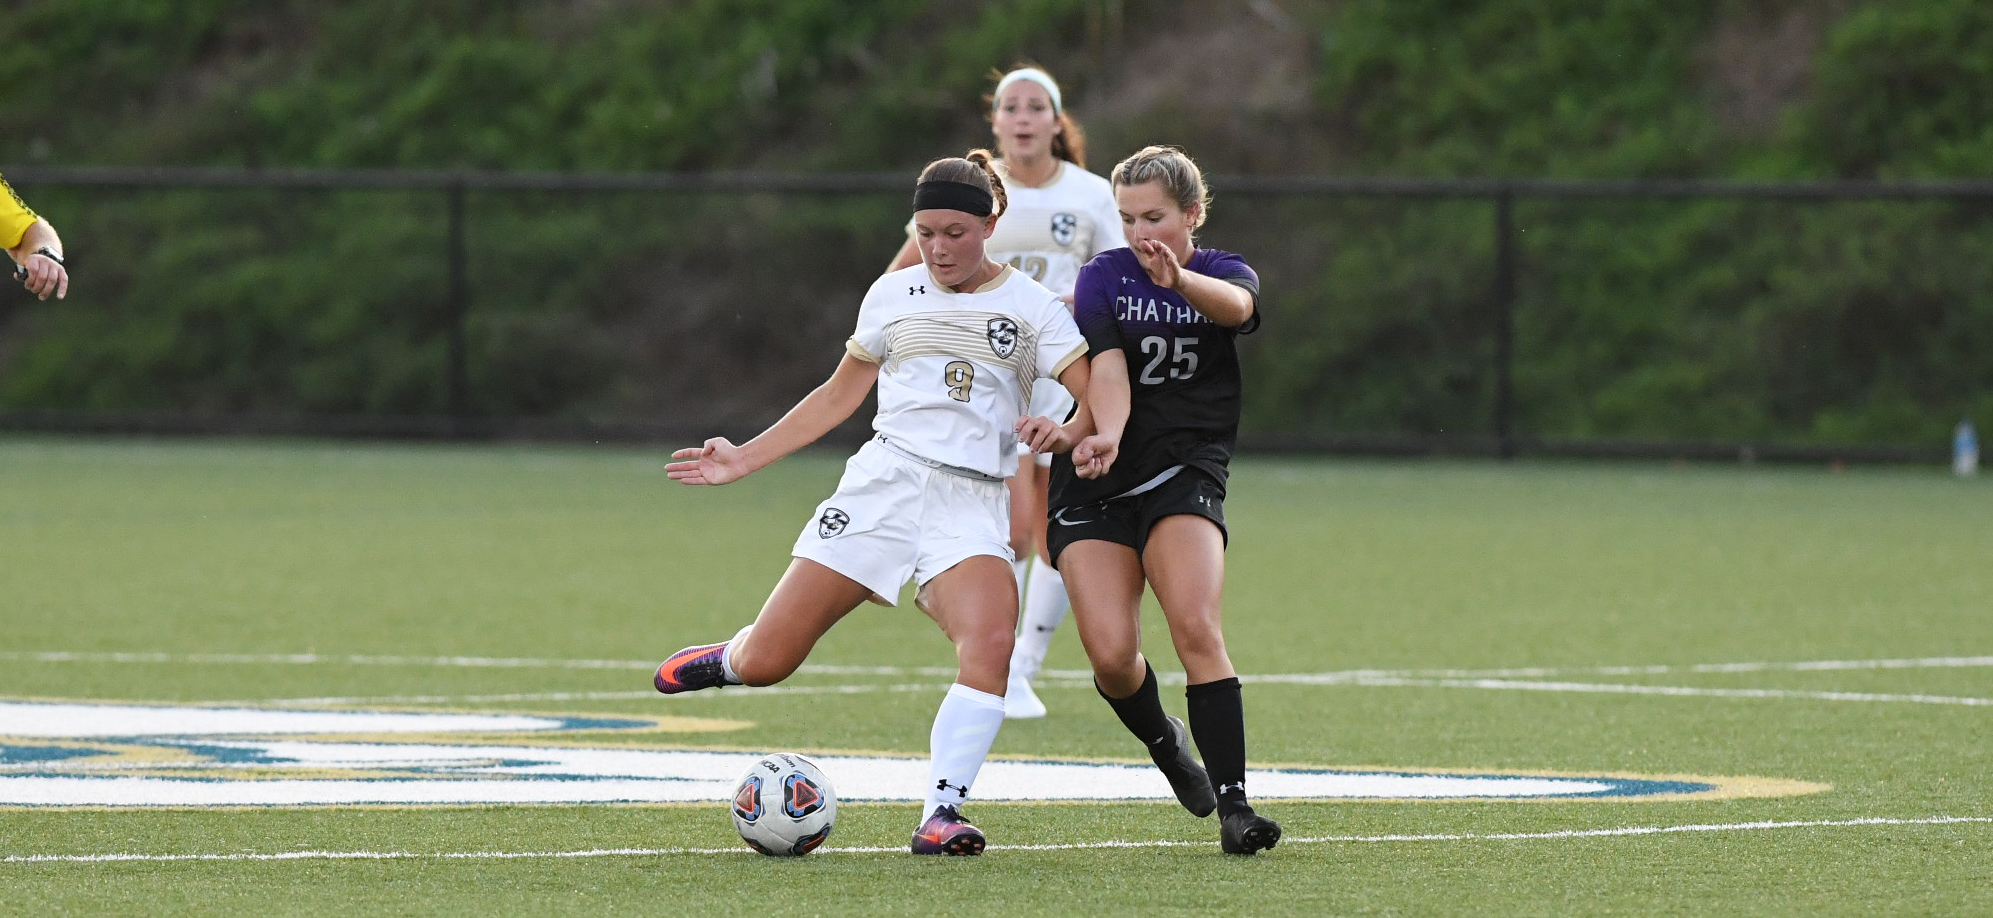 Brooke Emge netted a goal and took two shots as the Eagles drew, 1-1 against Chatham.